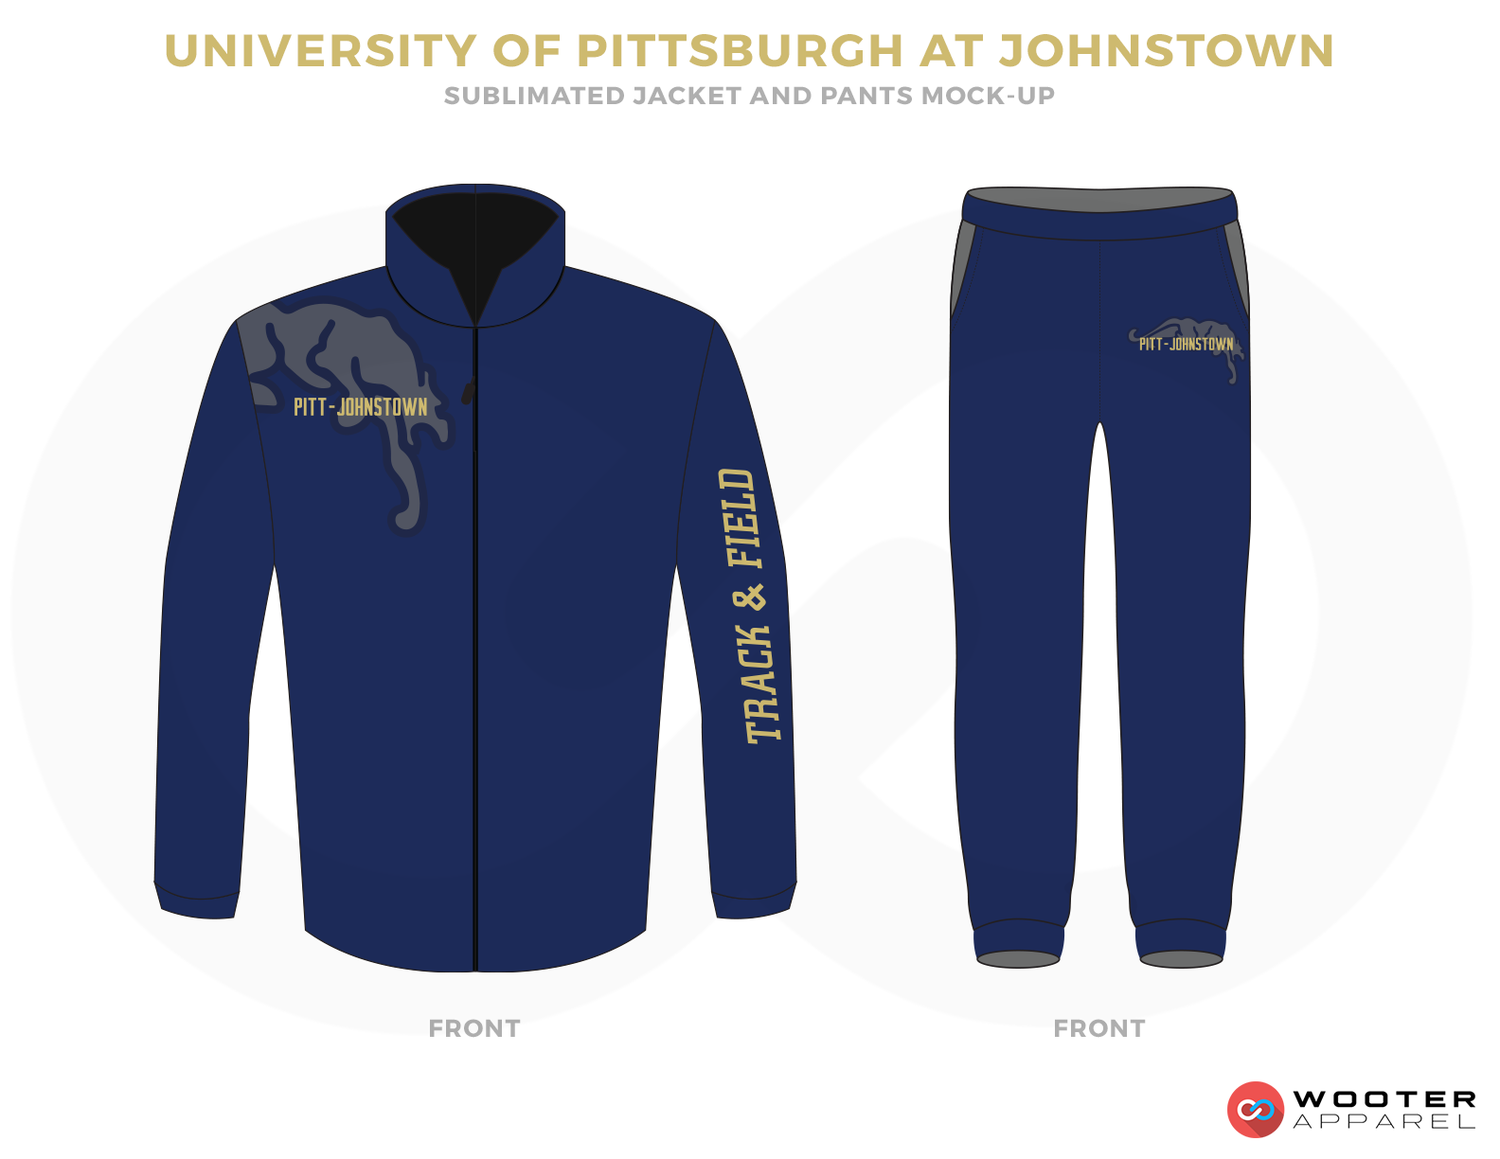 UNIVERSITY OF PITTSBURGH AT JOHNSTOWN Blue Vegas Gold and Grey Baseball Uniforms, Jacket and Pants